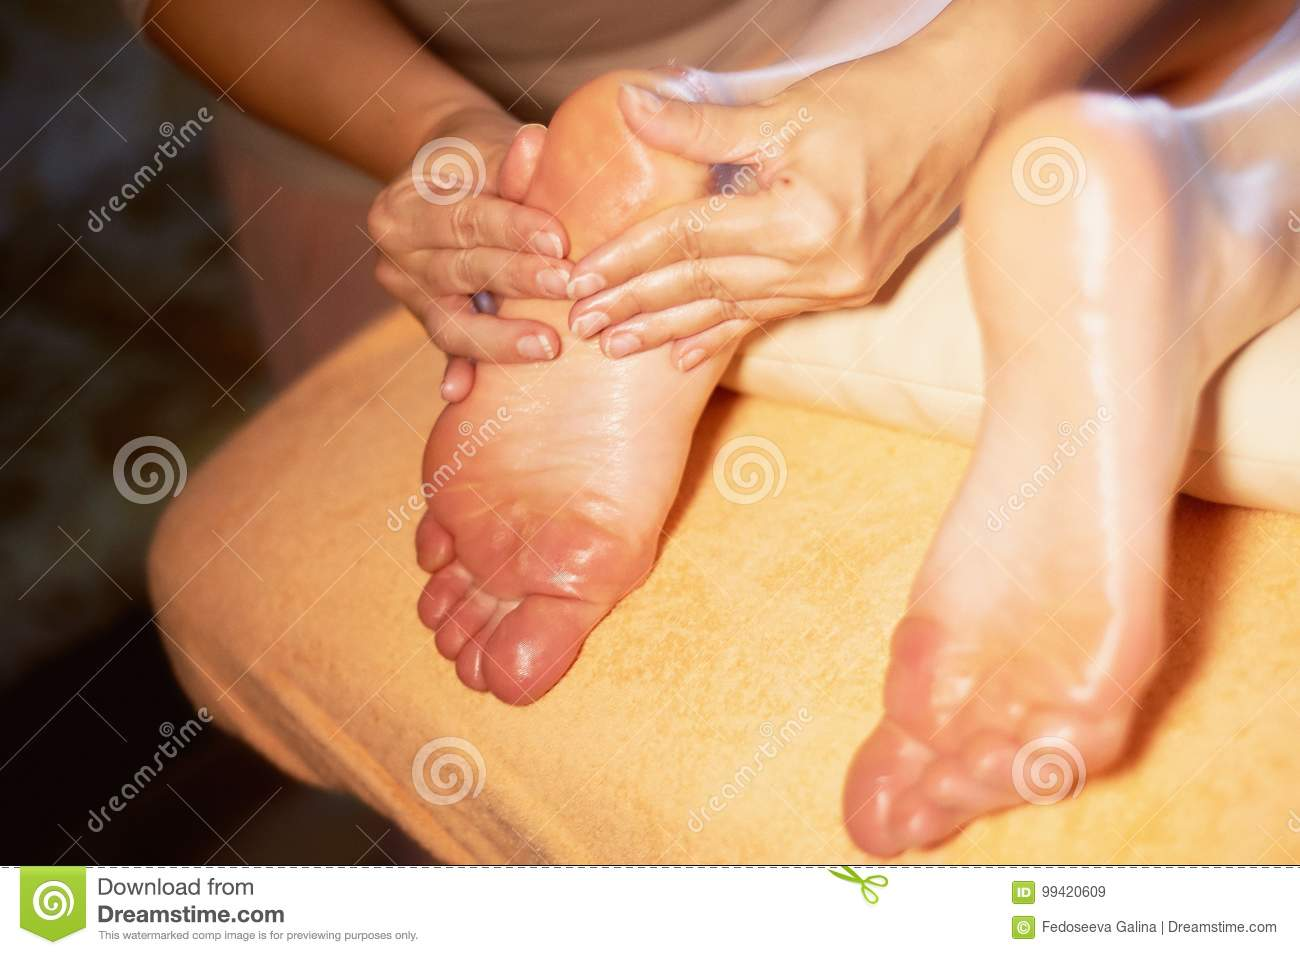 foot-massage-spa-salon-close-up-female-feet-traditional-thai-99420609 Relax in Style Using a Swedish Massage